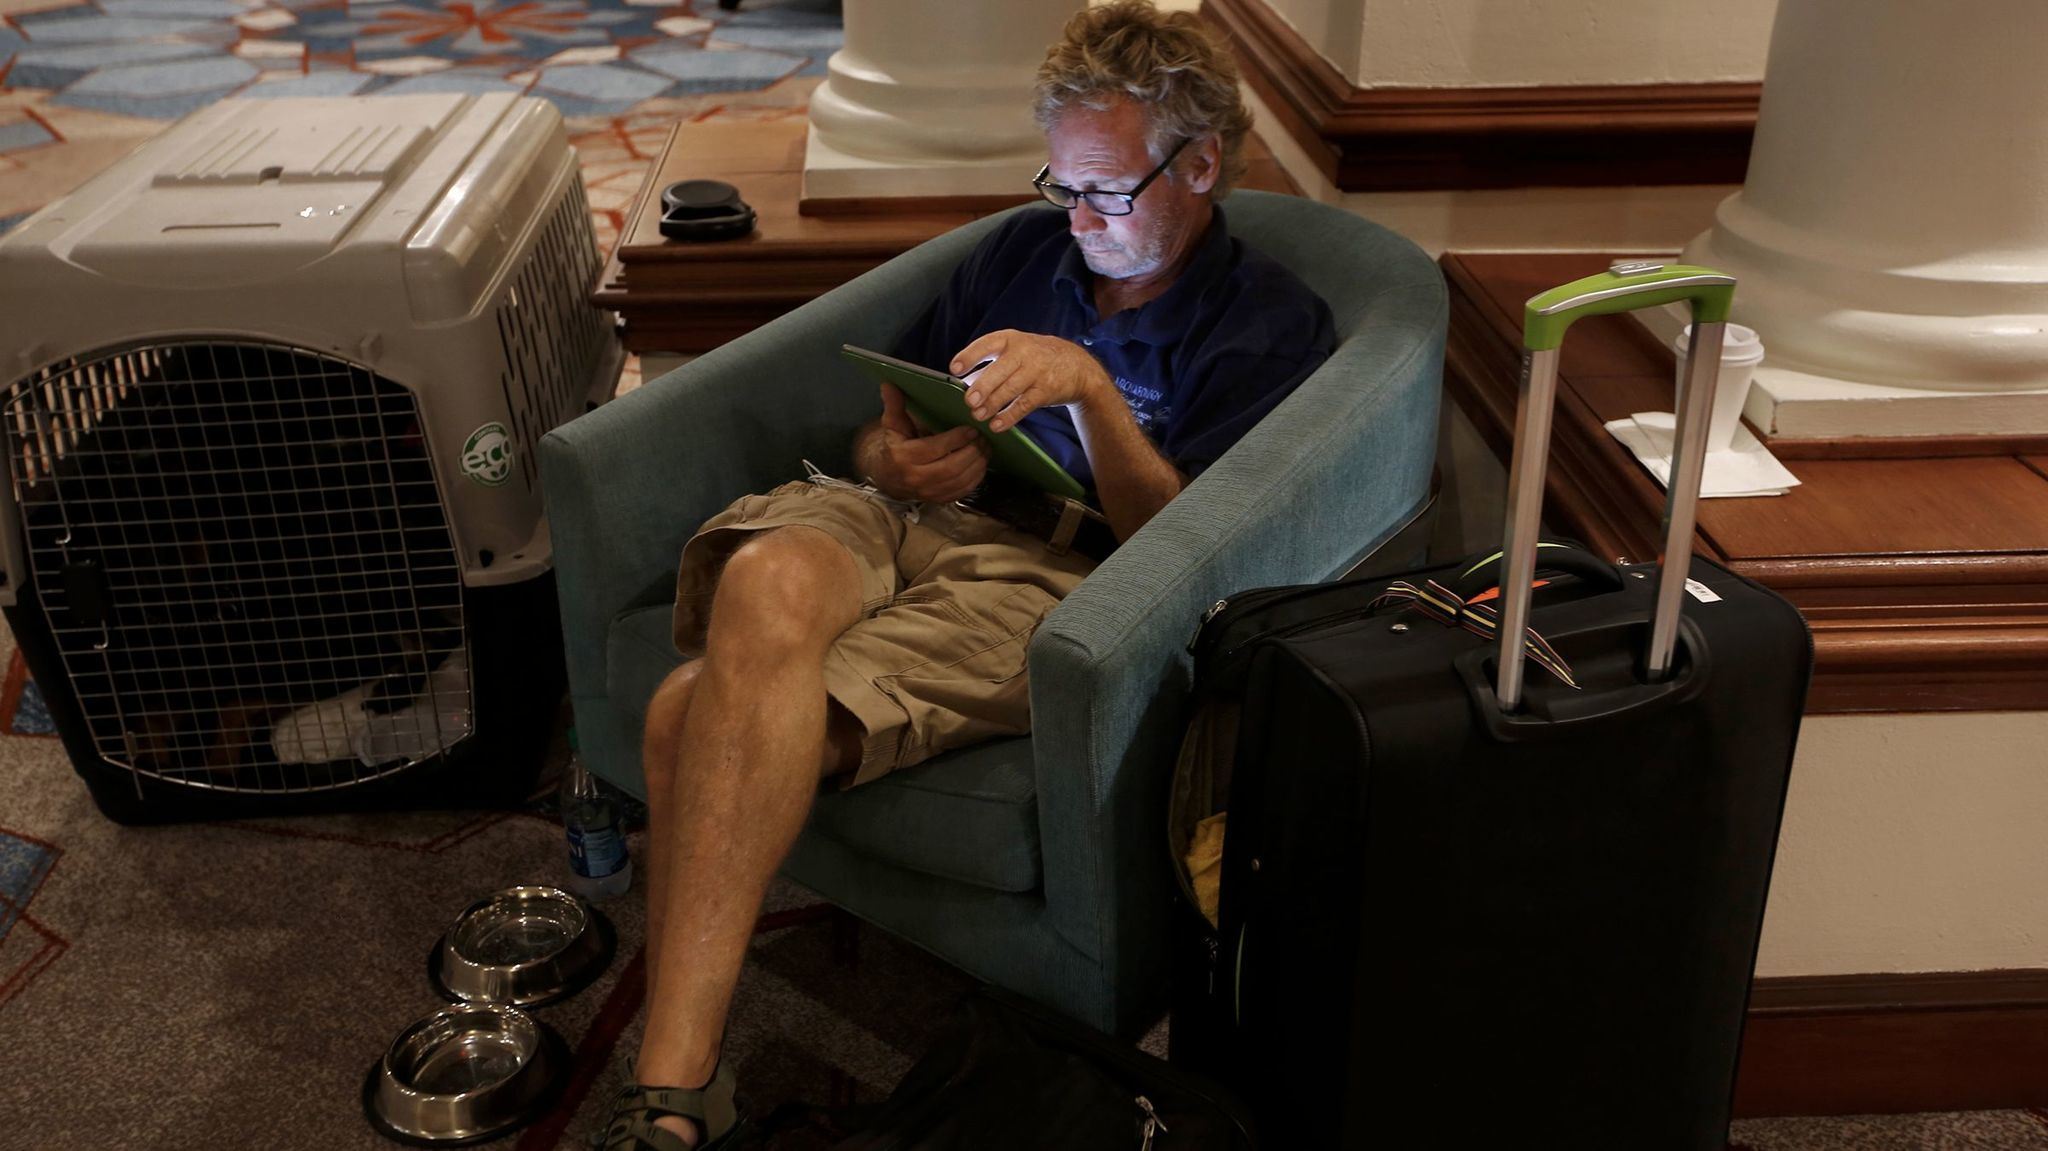 Ken Wild, an archaeologist with the National Park Service, evacuated from St. John during Hurricane Irma and is staying at the Sheraton in San Juan.